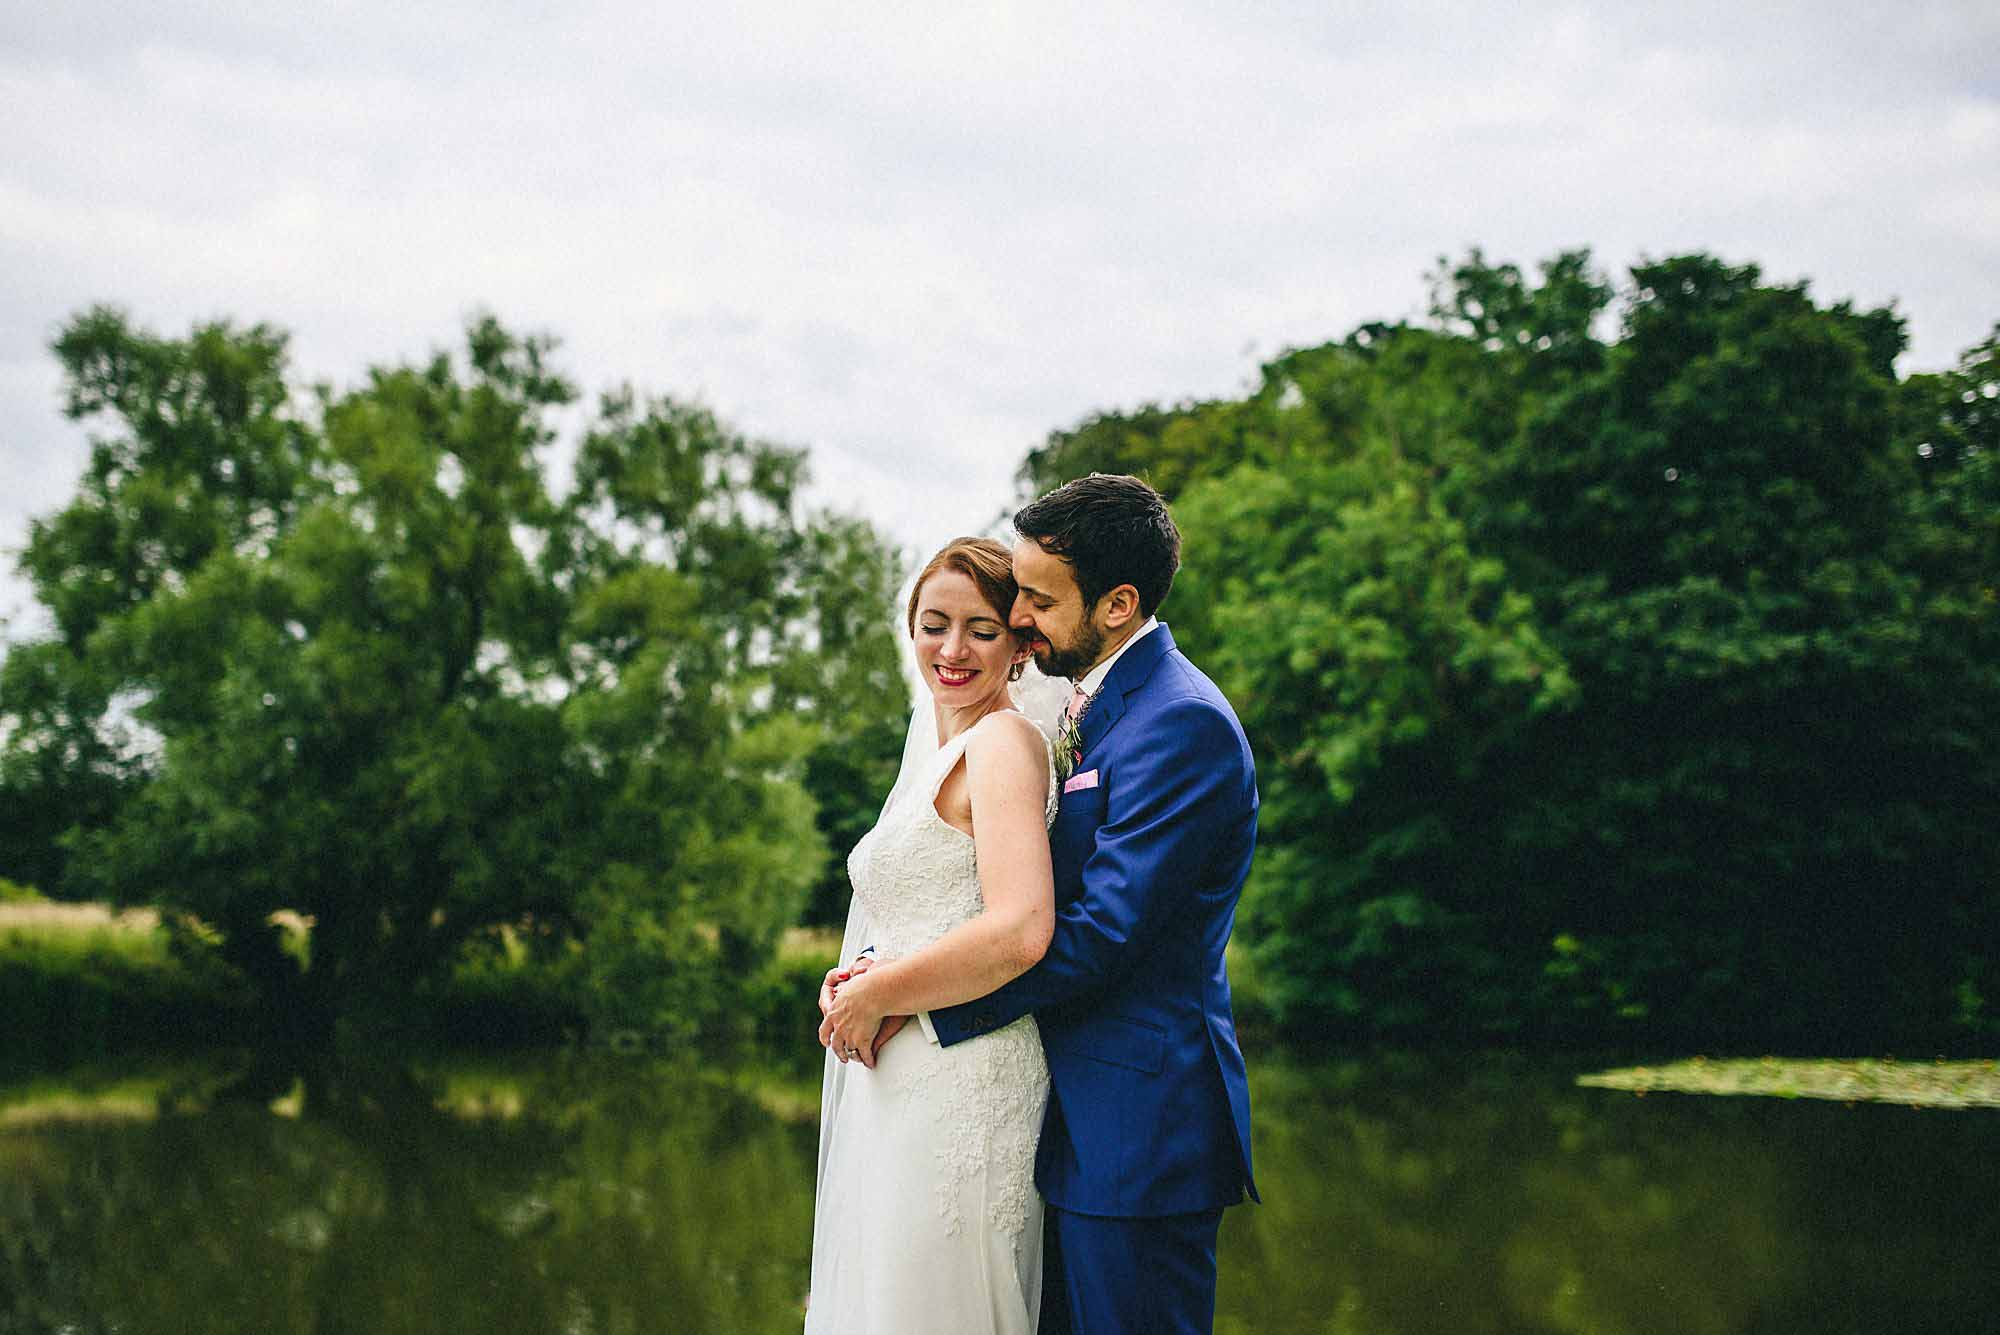 Narborough Hall Gardens wedding photography 36 Completed